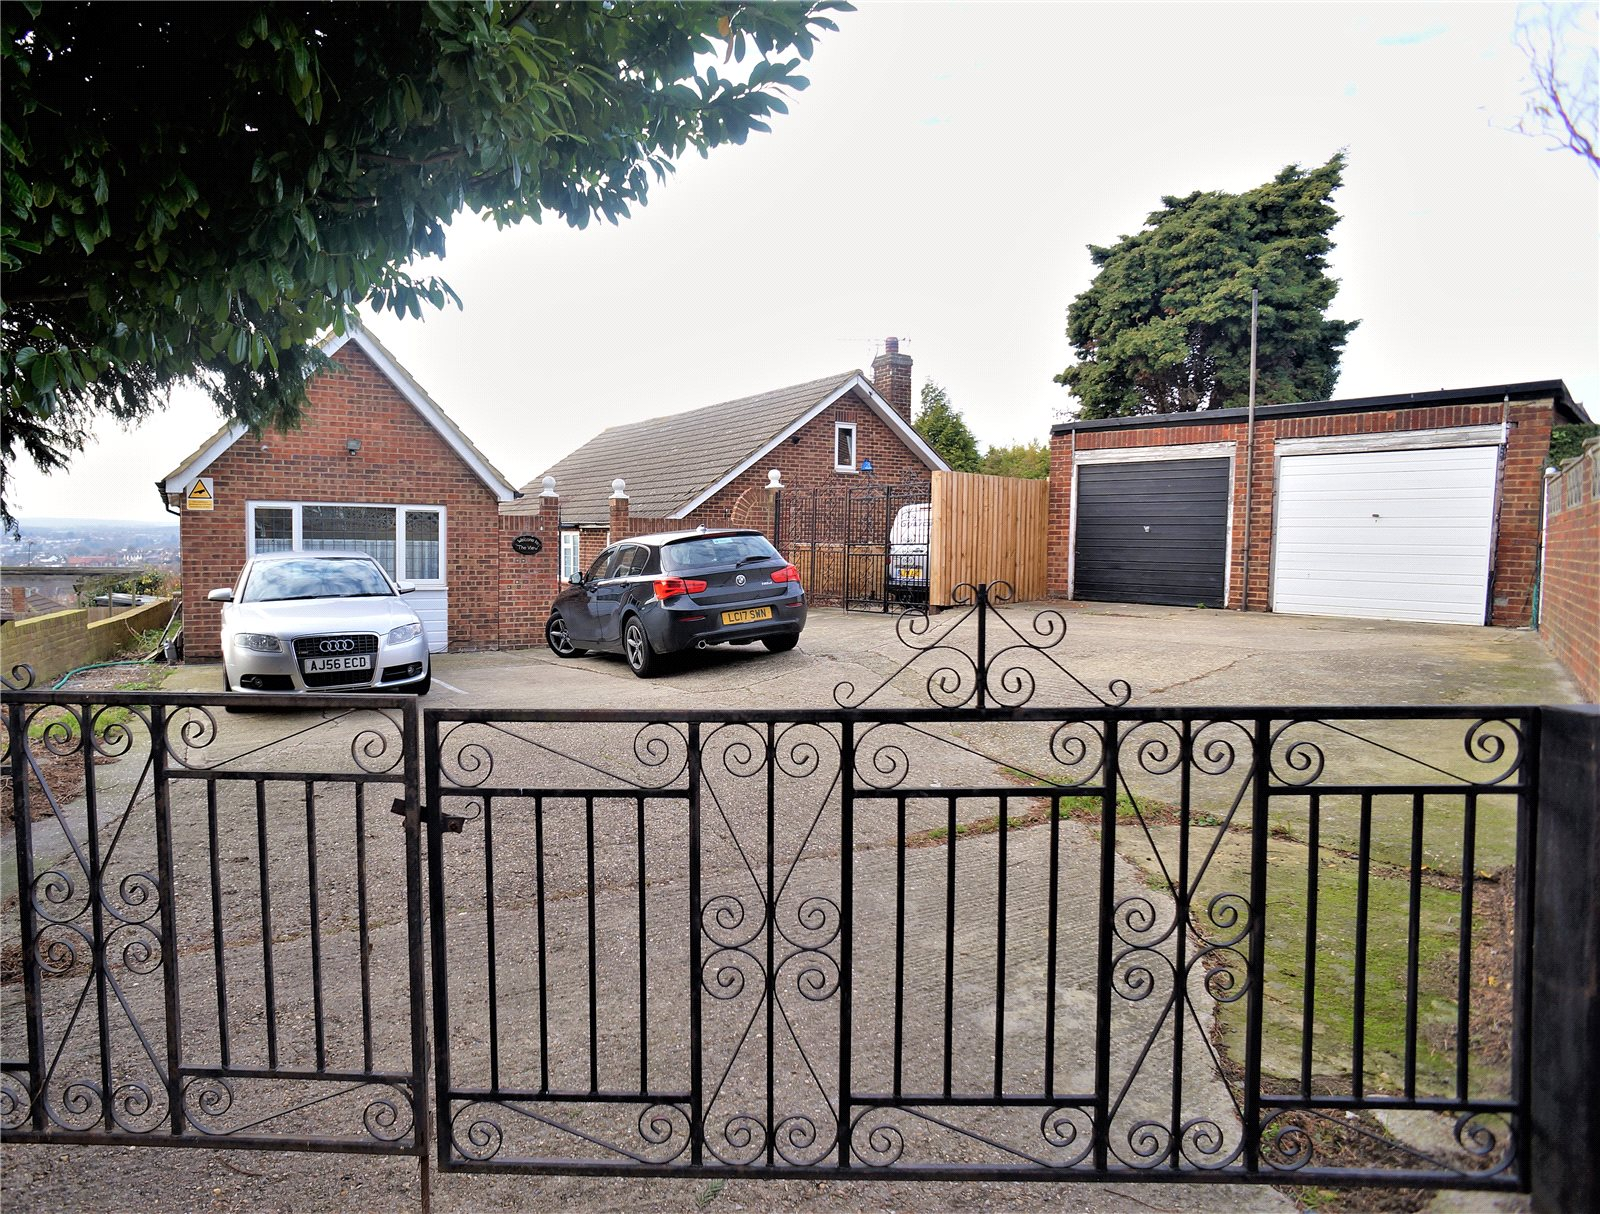 3 Bedrooms Detached Bungalow for sale in Windmill Street, Rochester, Kent, ME2